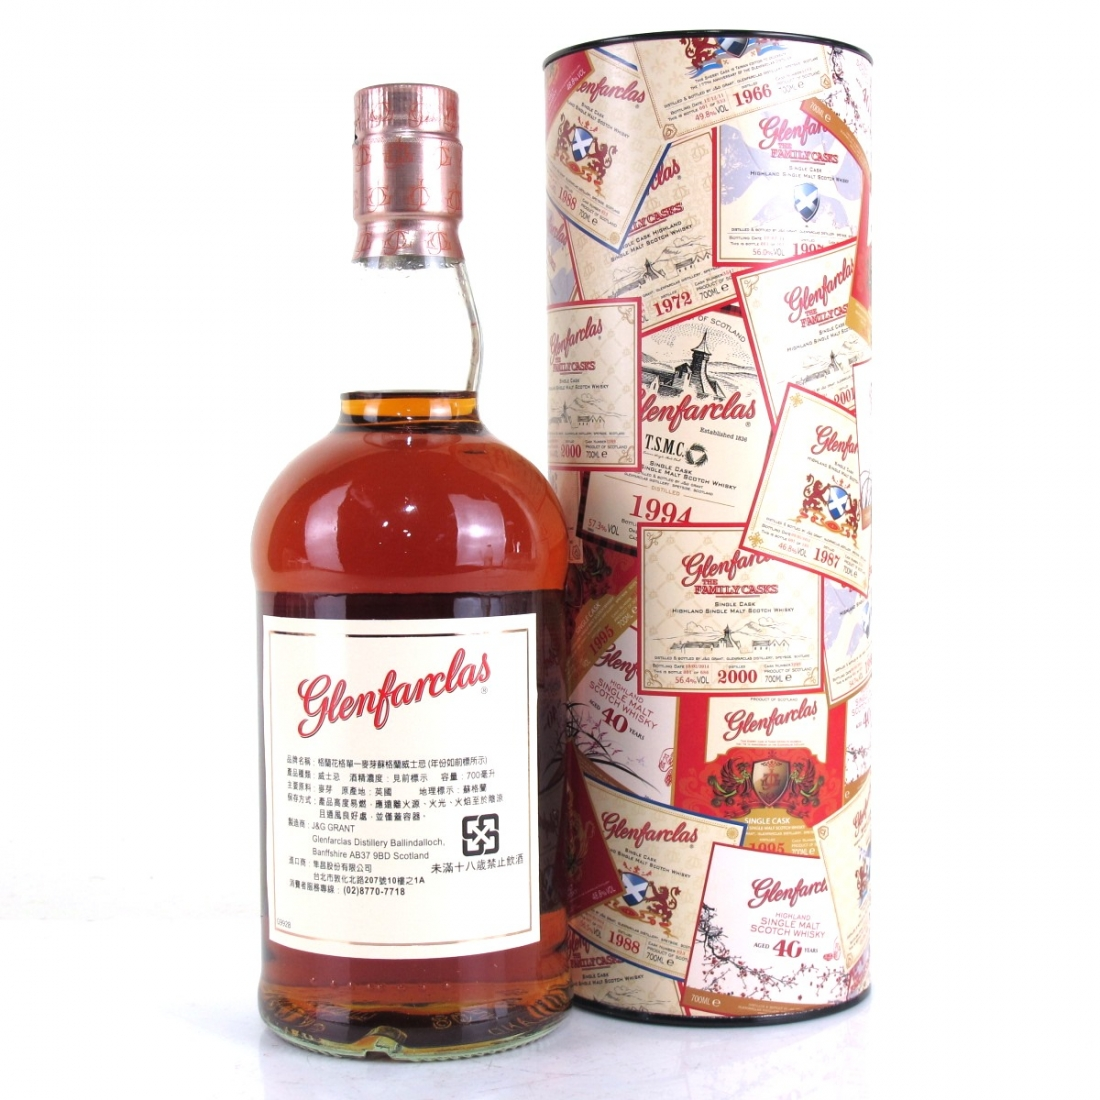 Glenfarclas 179th Anniversary Taiwan Exclusive